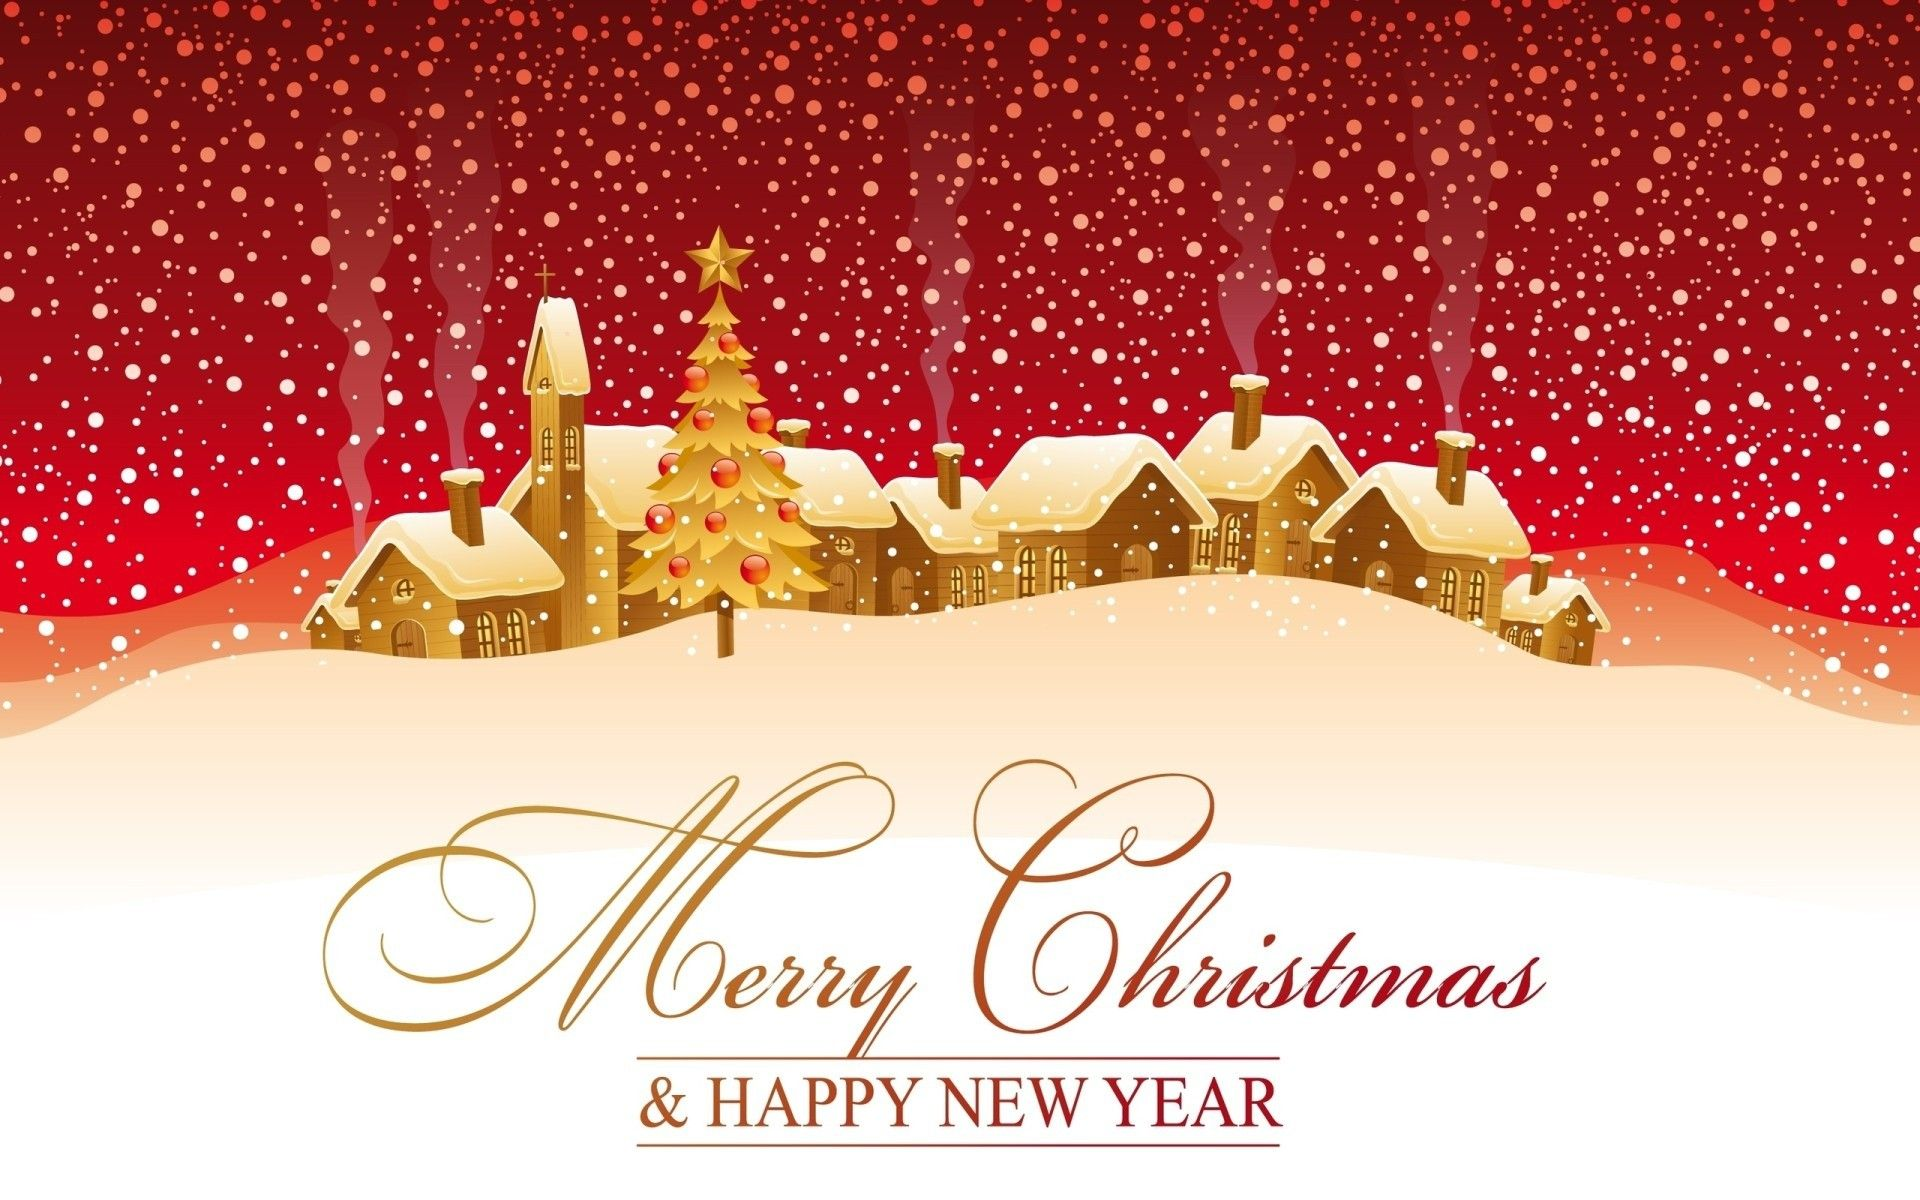 happy christmas wallpapers 2014 with wishes and sayings | thanks